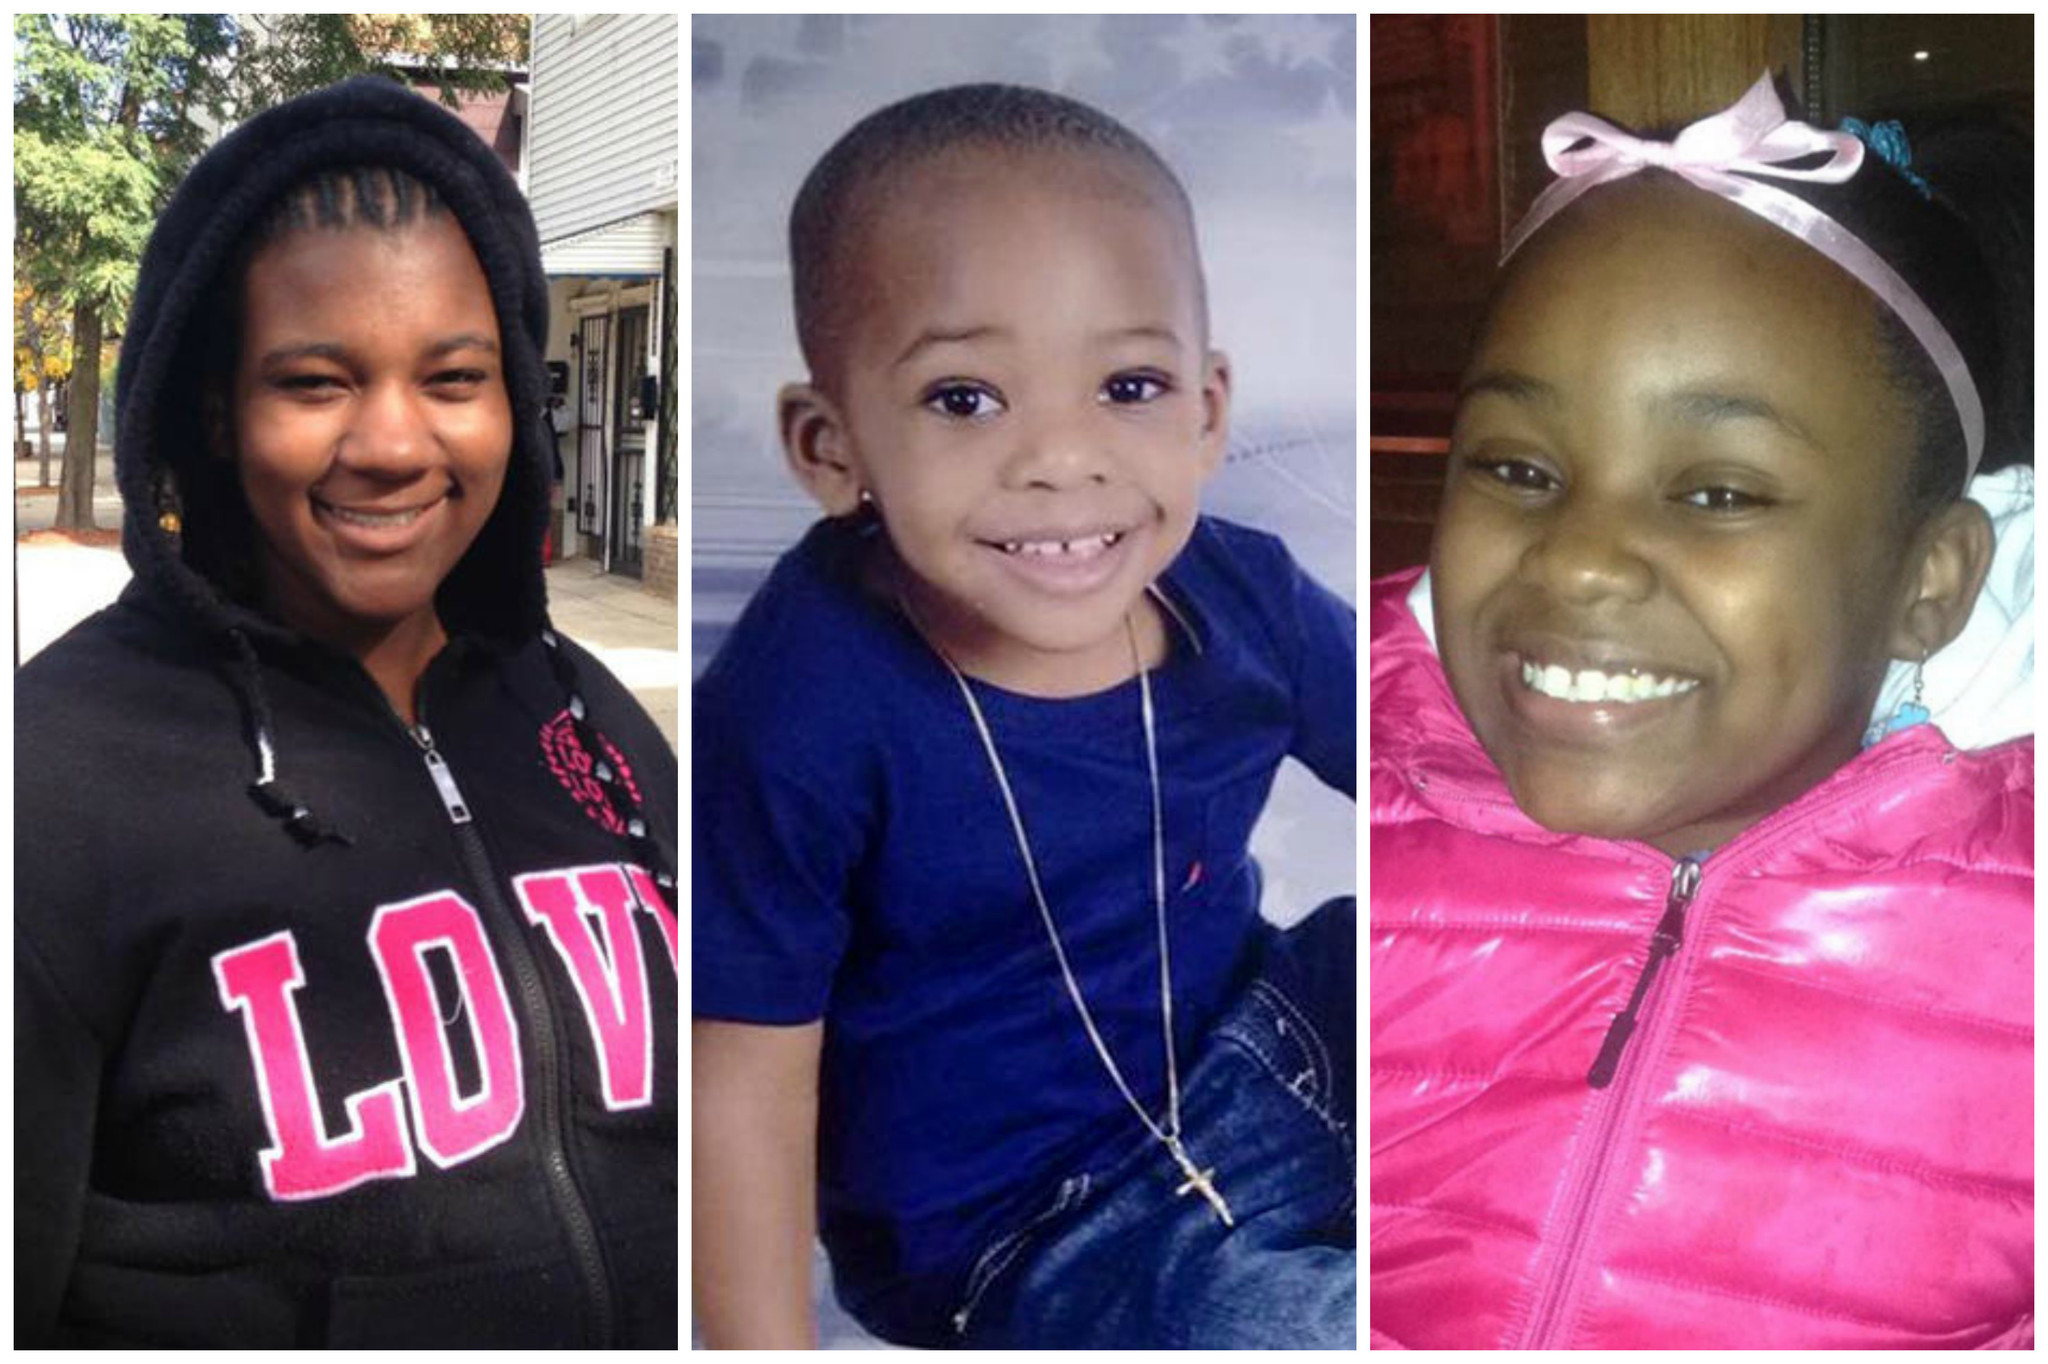 Third child s from a shooting in Chicago in just two days